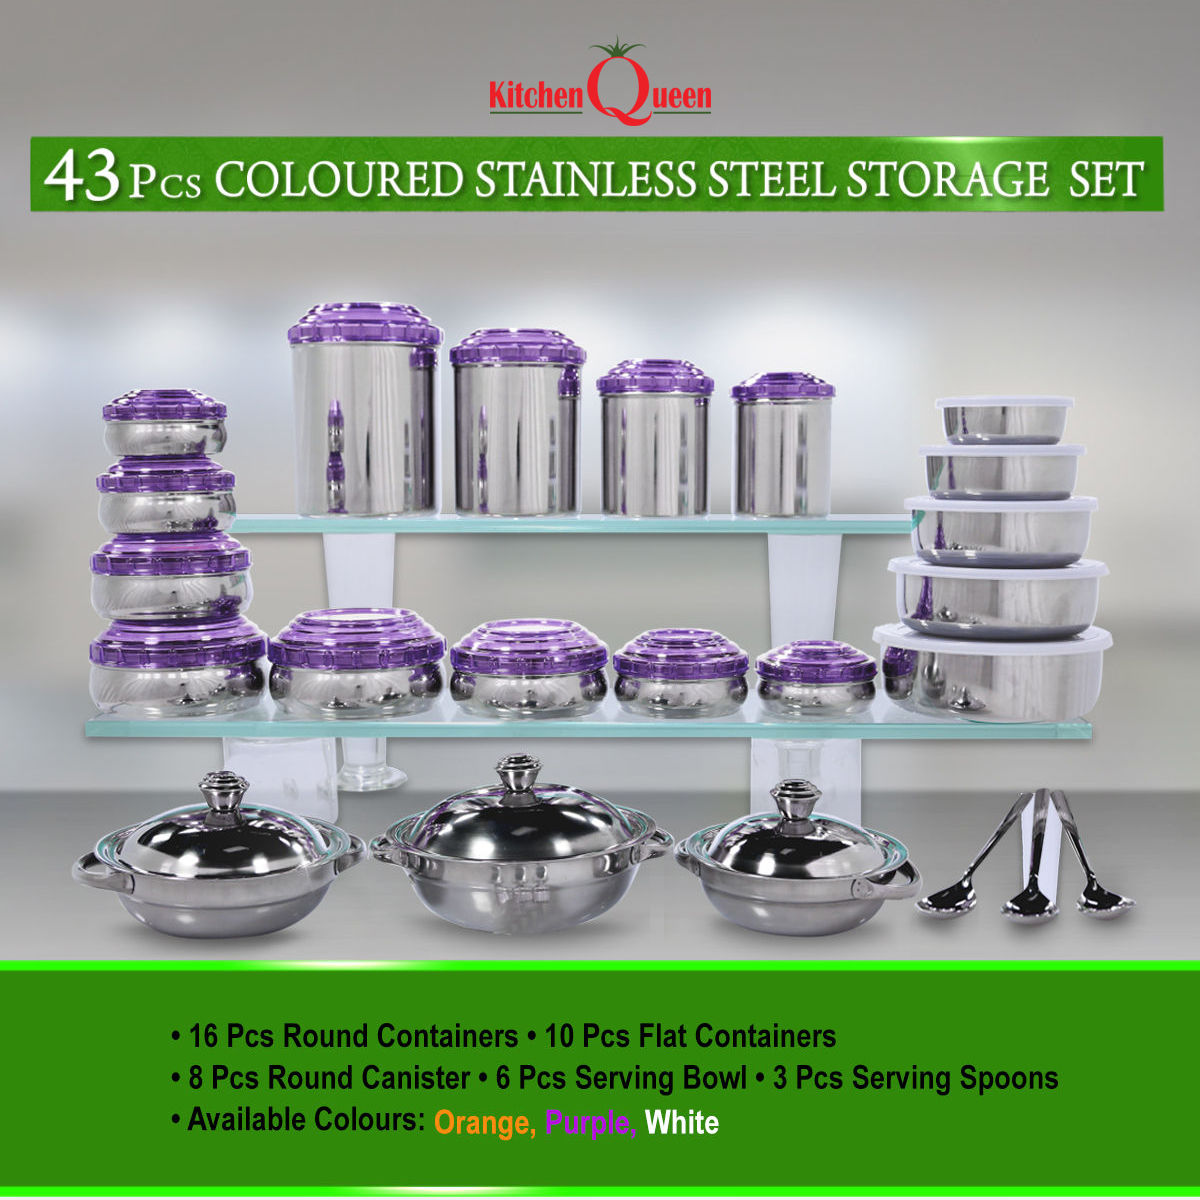 Buy Kitchen Queen 43 Pcs Coloured Stainless Steel Storage Set Online At Best Price In India On